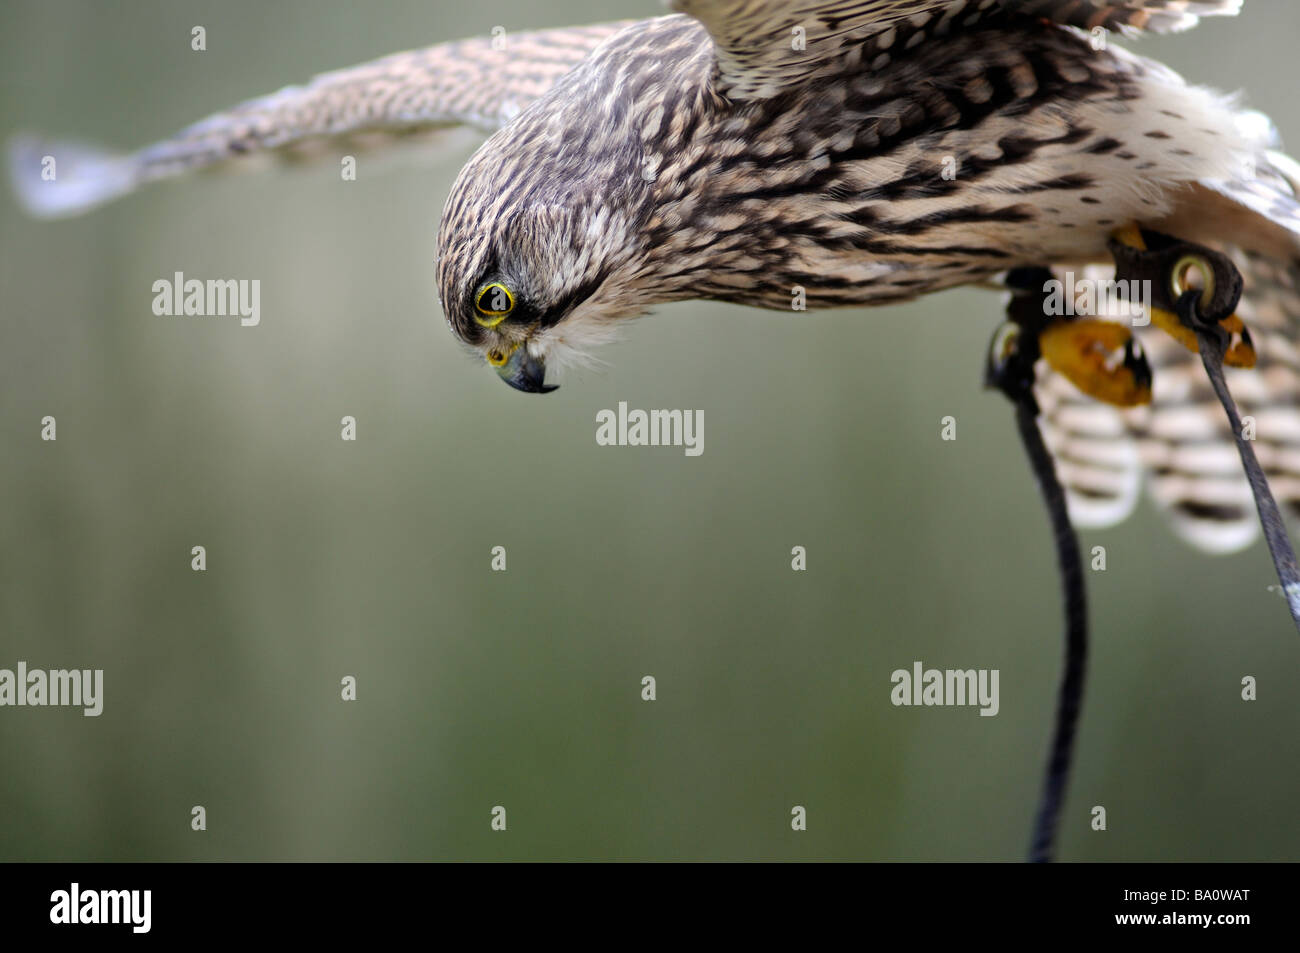 Close up of a captive Kestrel (Falco tinnunculus) hovering while hunting - Stock Image